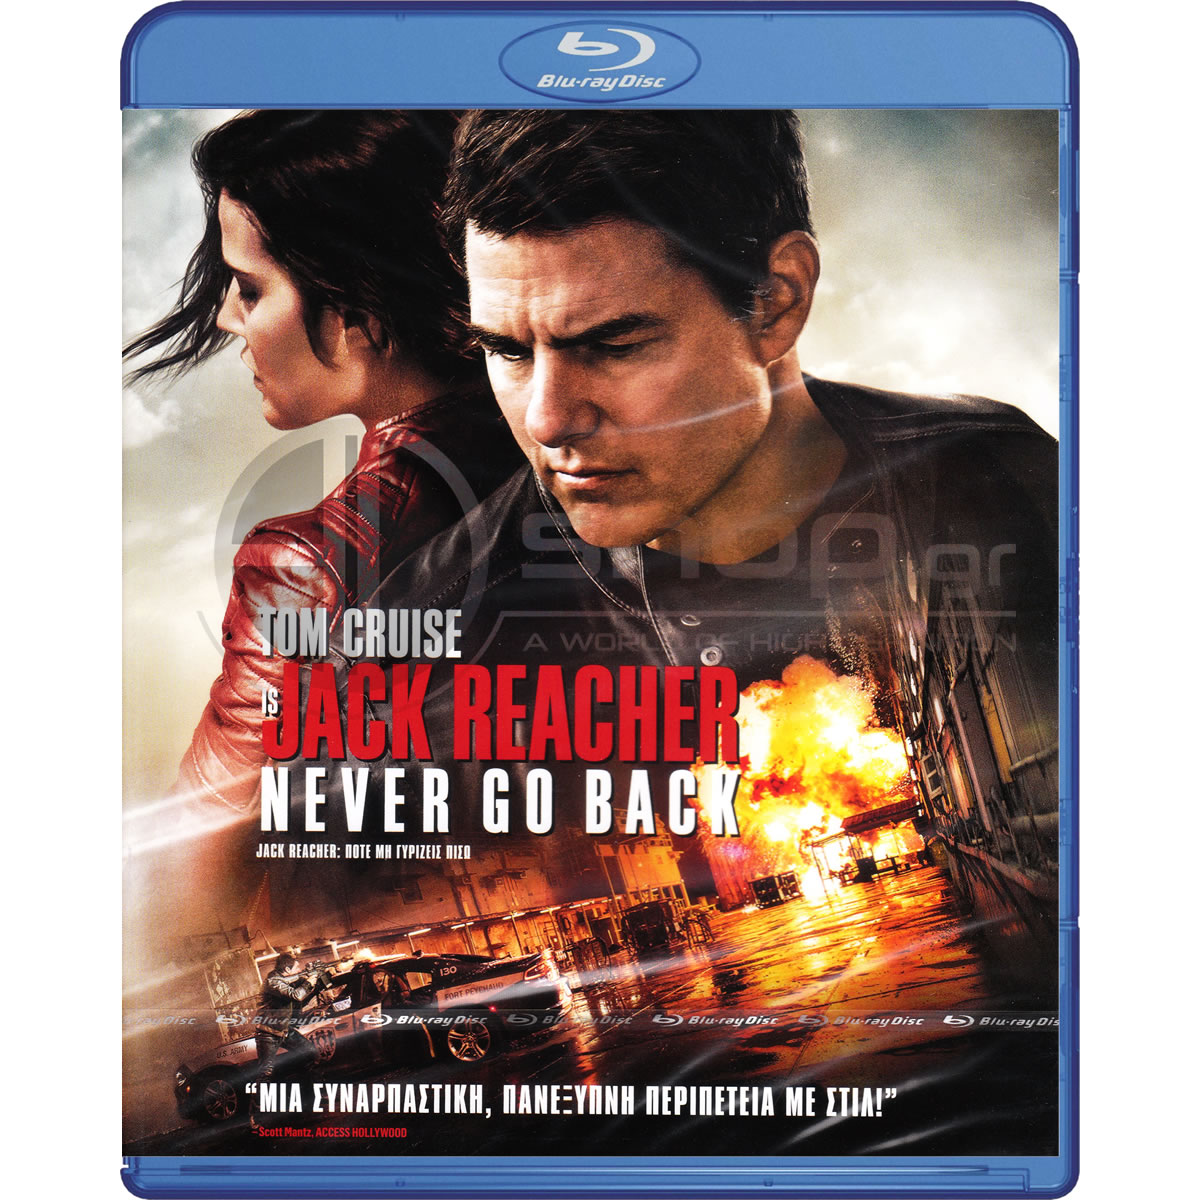 JACK REACHER: NEVER GO BACK - JACK REACHER: ΠΟΤΕ ΜΗ ΓΥΡΙΖΕΙΣ ΠΙΣΩ (BLU-RAY)